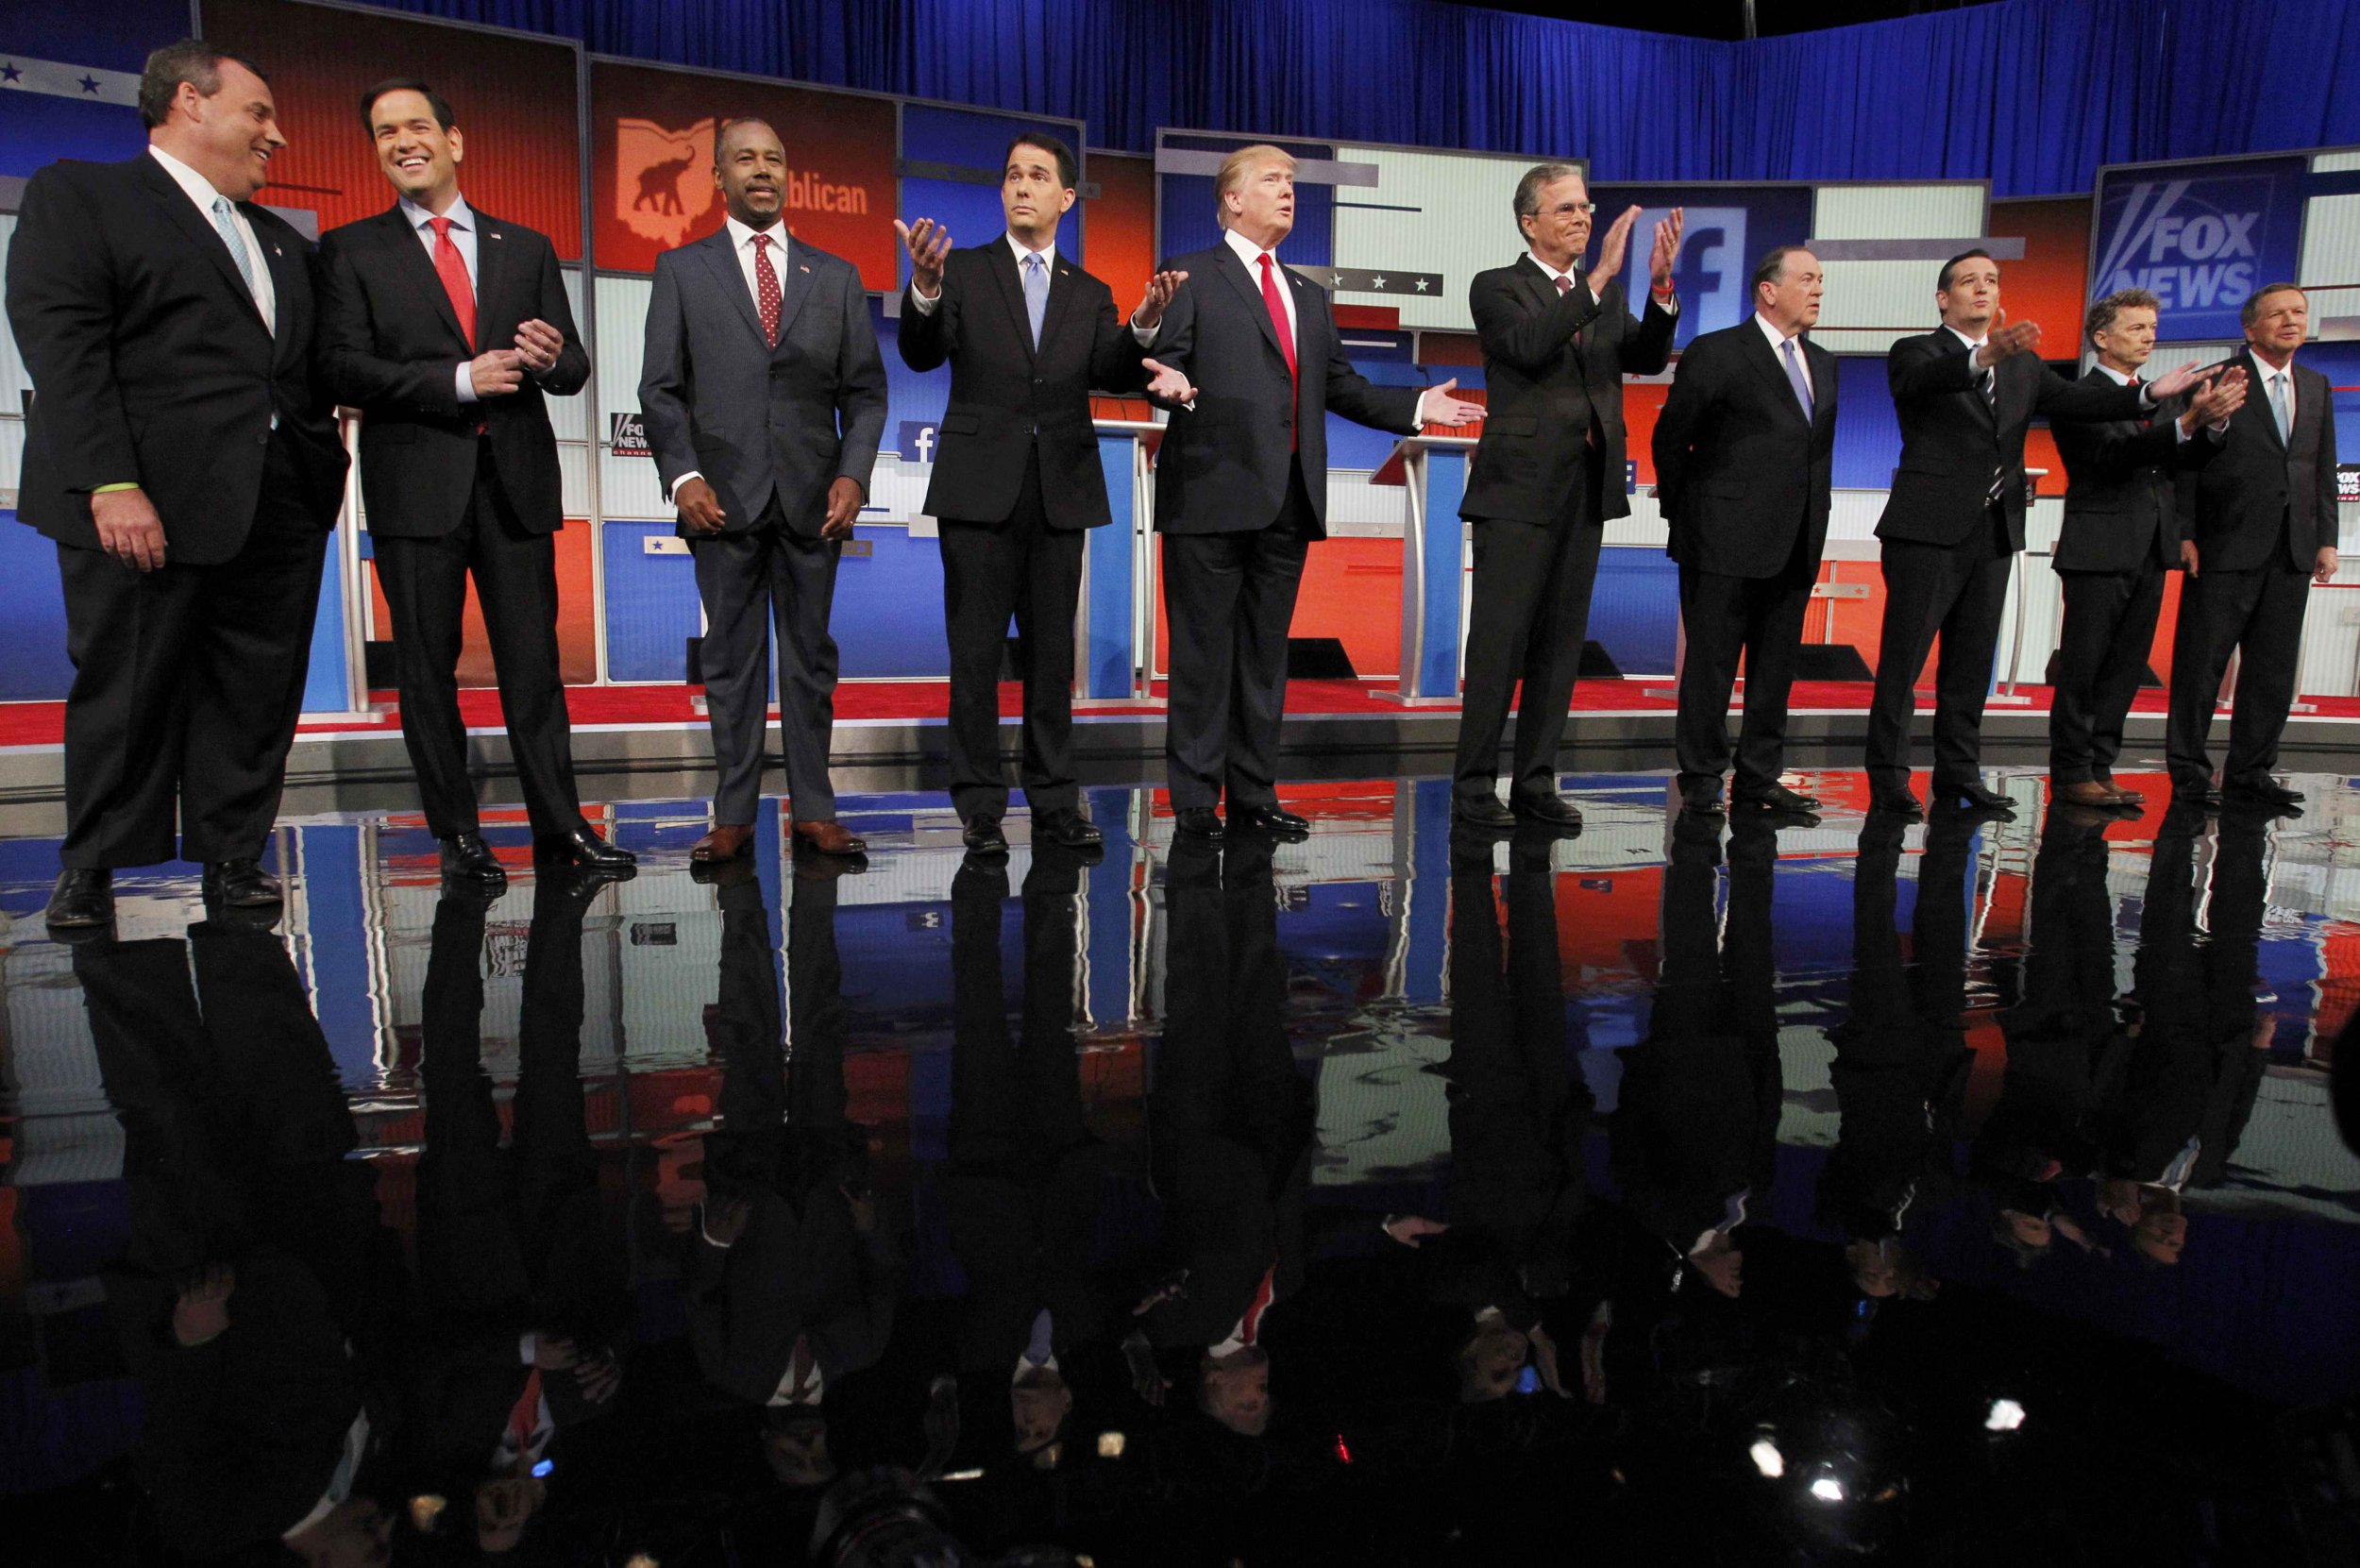 2016 Republican Presidential Candidates Come Out Strong in